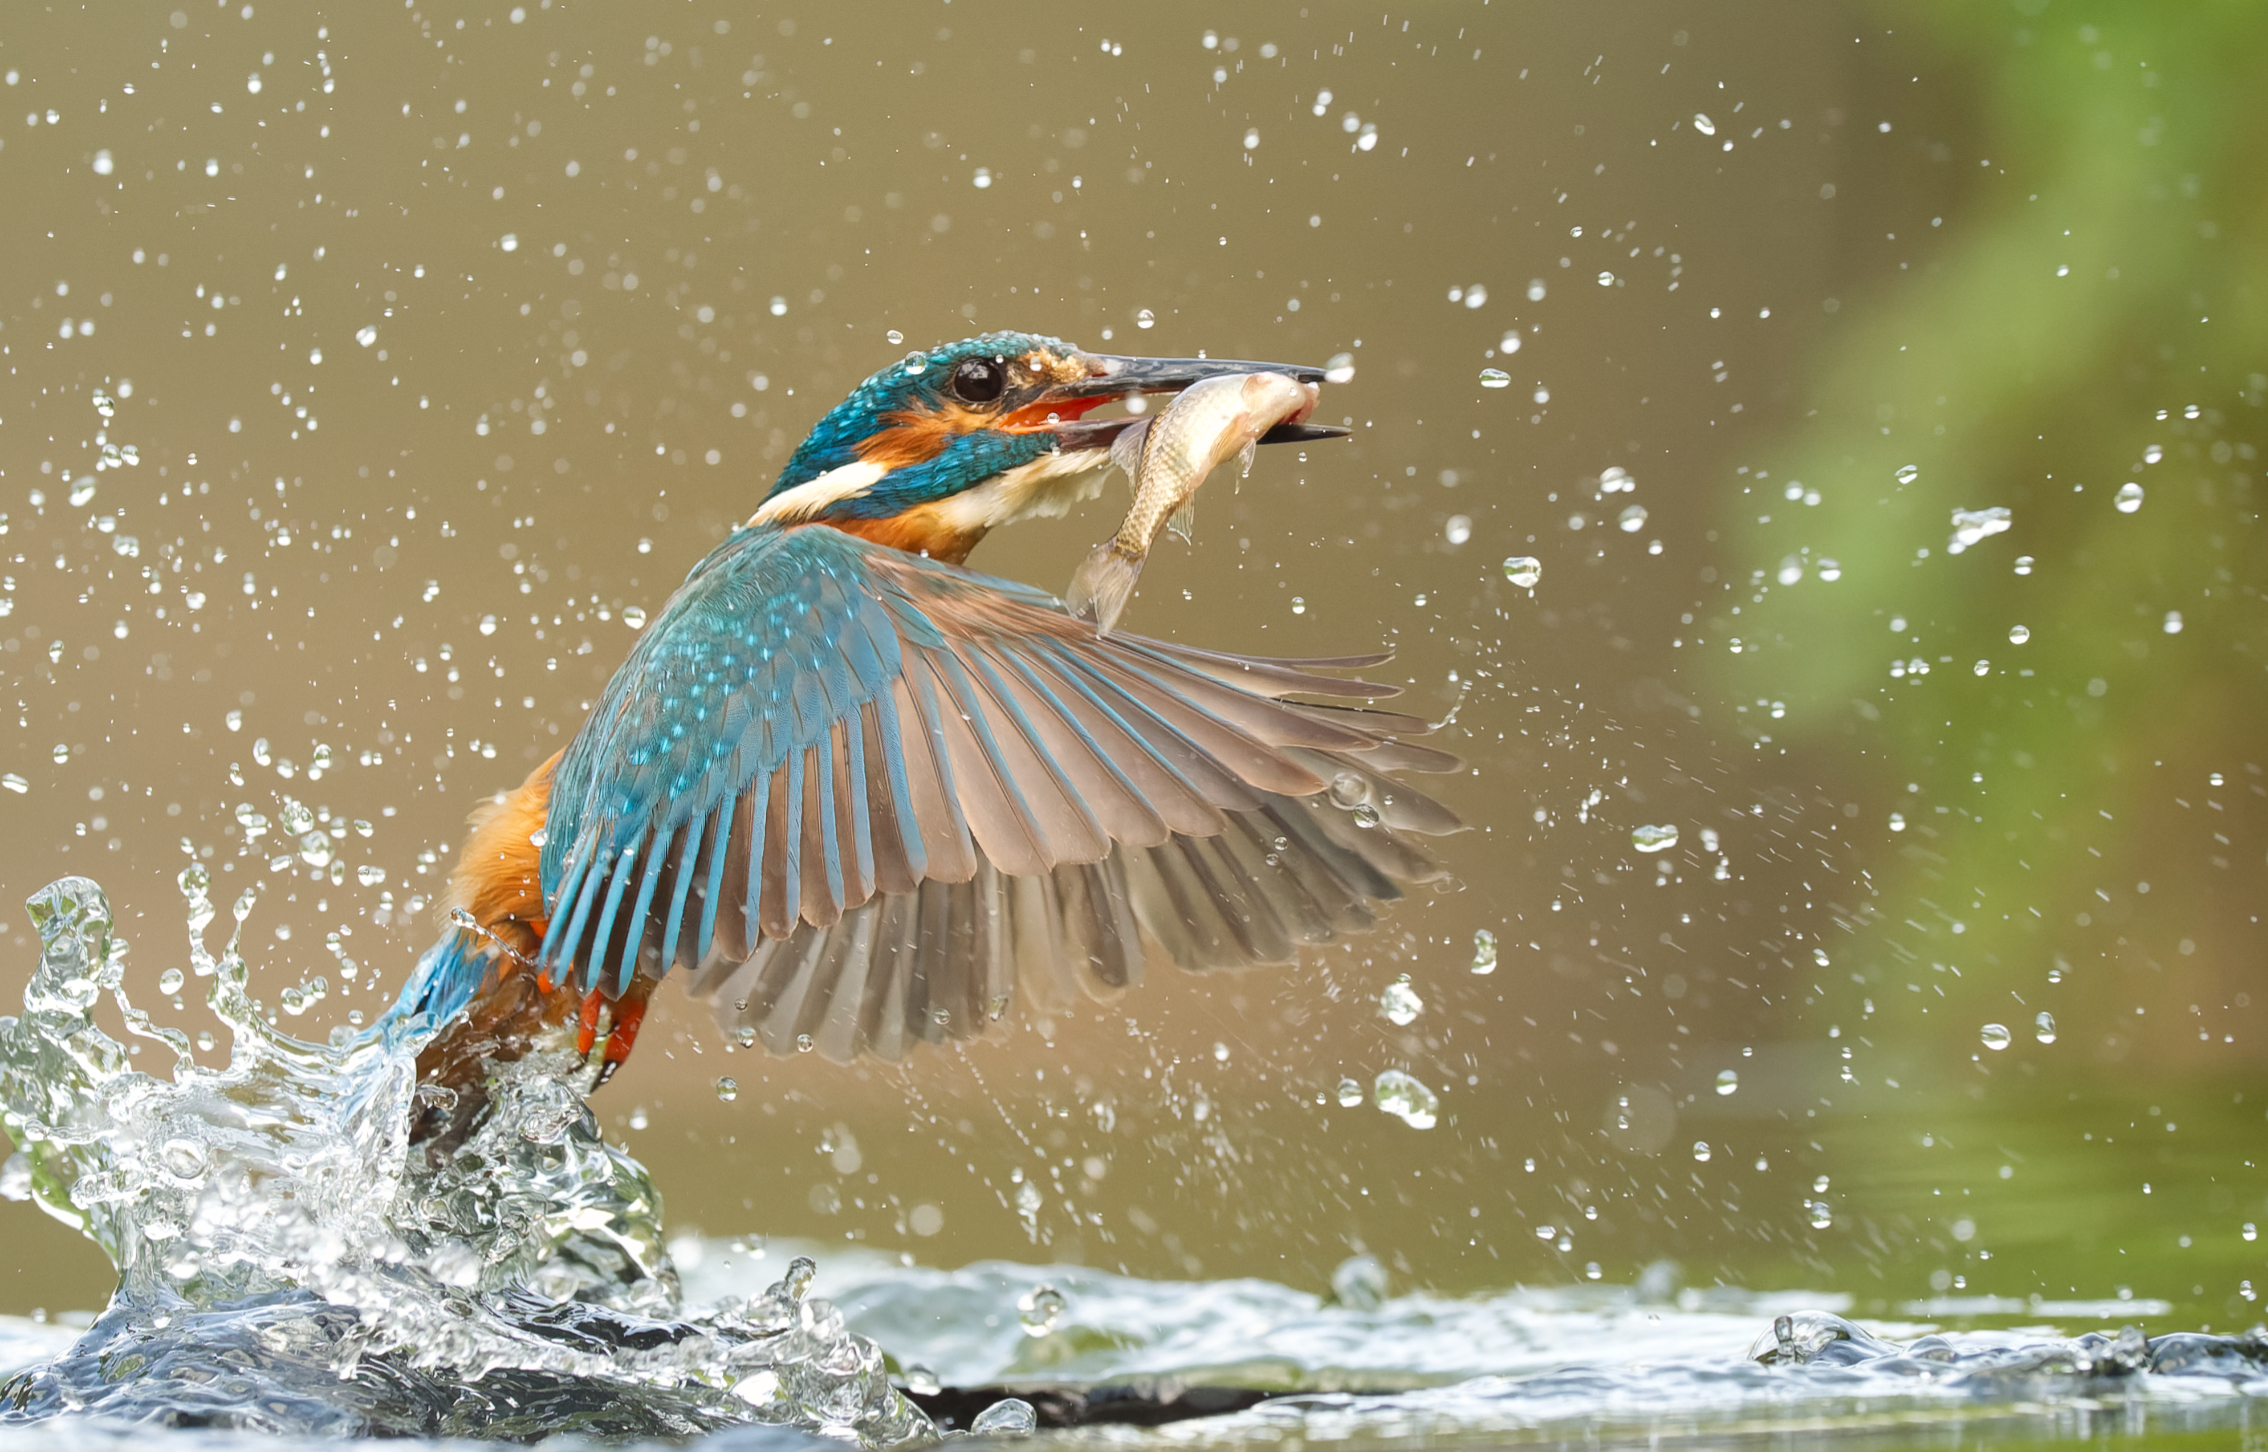 Photo of a kingfisher catching a fish